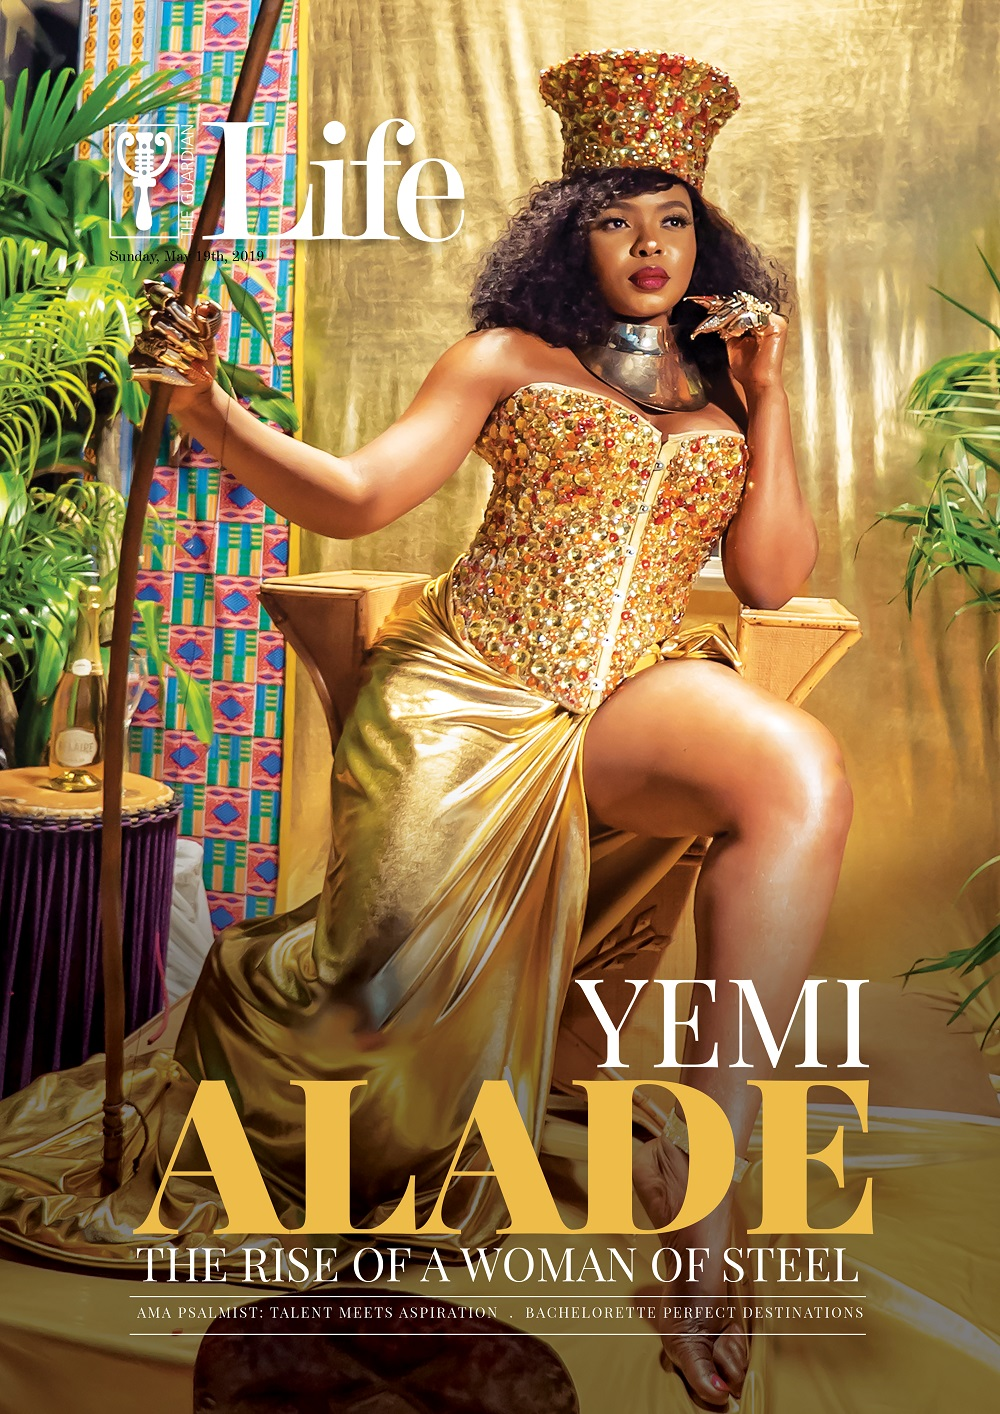 Yemi-Alade-Woman-of-Steel-Guardian-Life-Cover